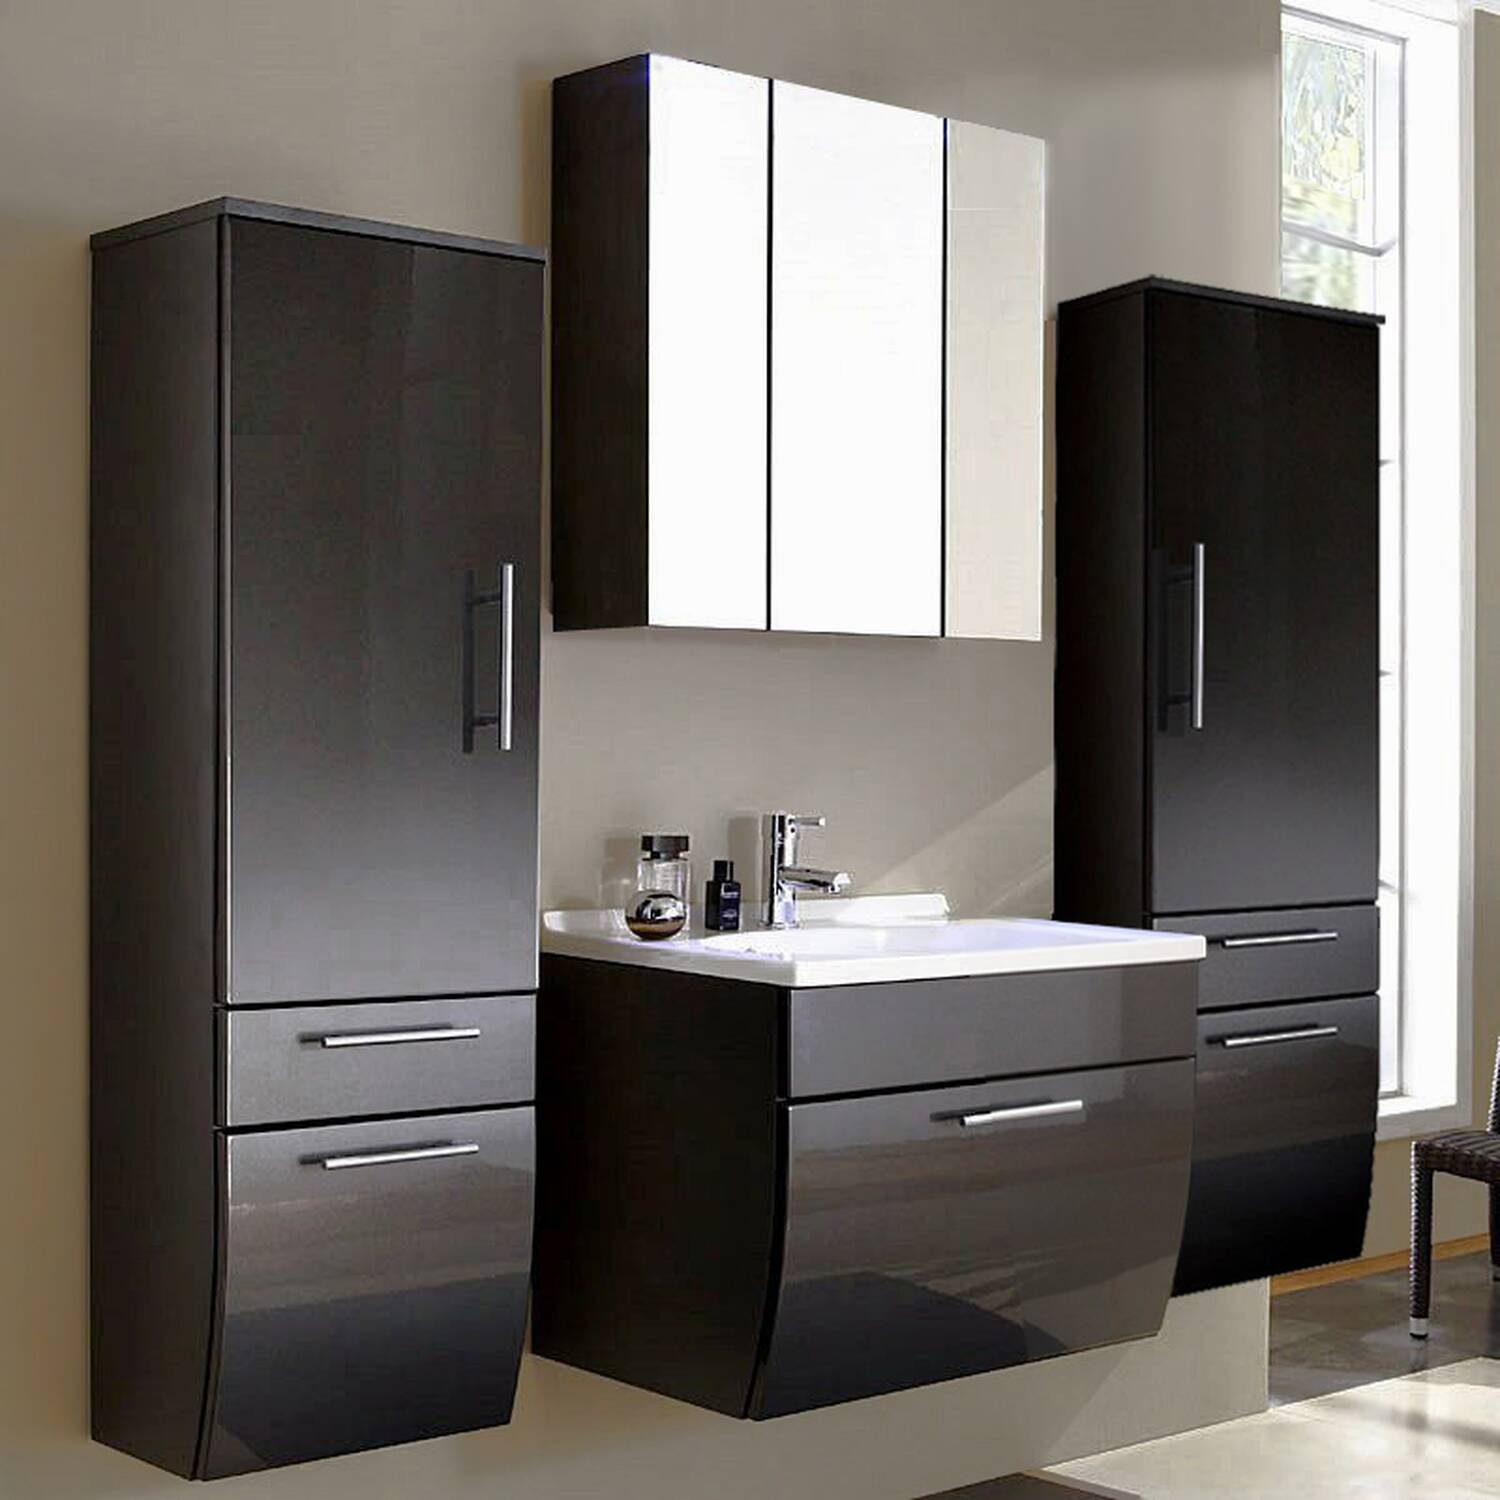 badm bel set talona 02 hochglanz anthrazit 70cm. Black Bedroom Furniture Sets. Home Design Ideas